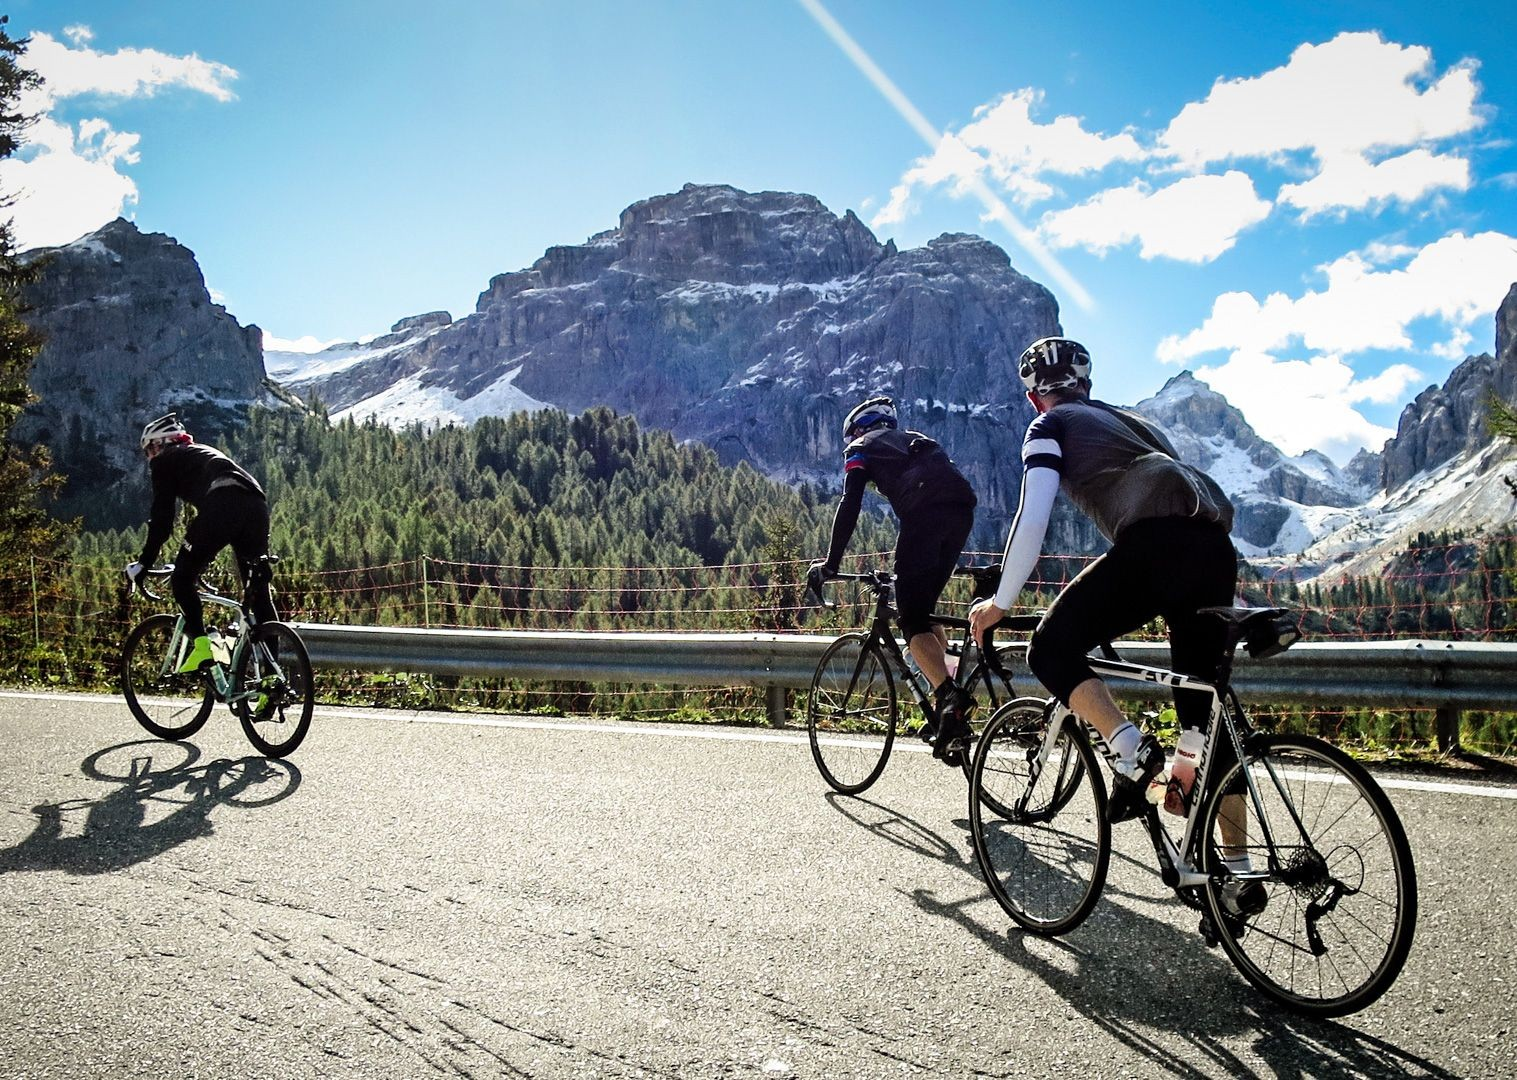 challenging-climbs-italian-dolomites-road-bike-skedaddle.jpg - Italy - Raid Dolomiti - Guided Road Cycling Holiday - Road Cycling